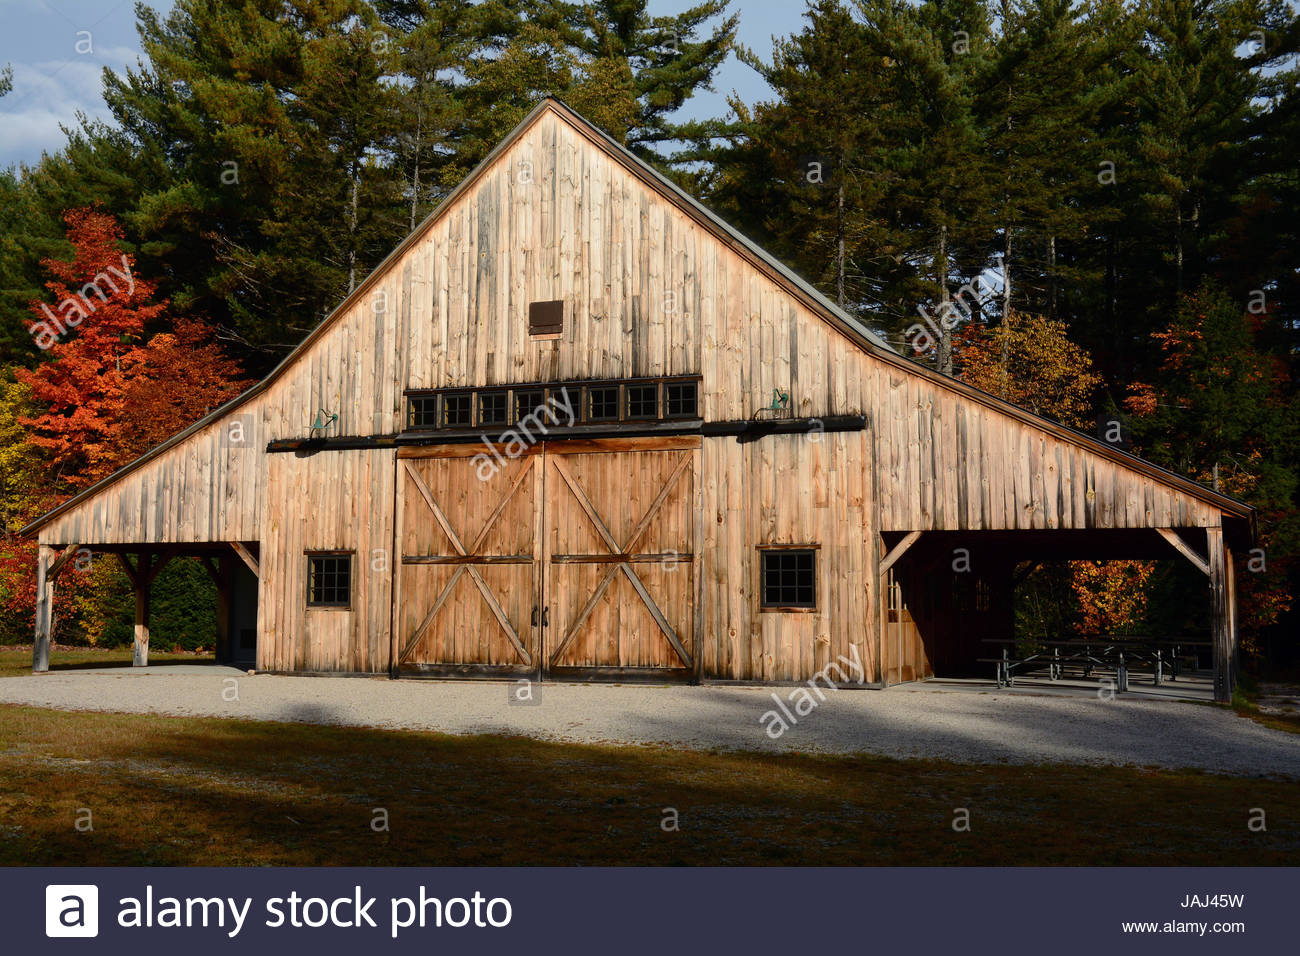 A post and beam barn at the Russell-Colbath Historic site. - Stock Image